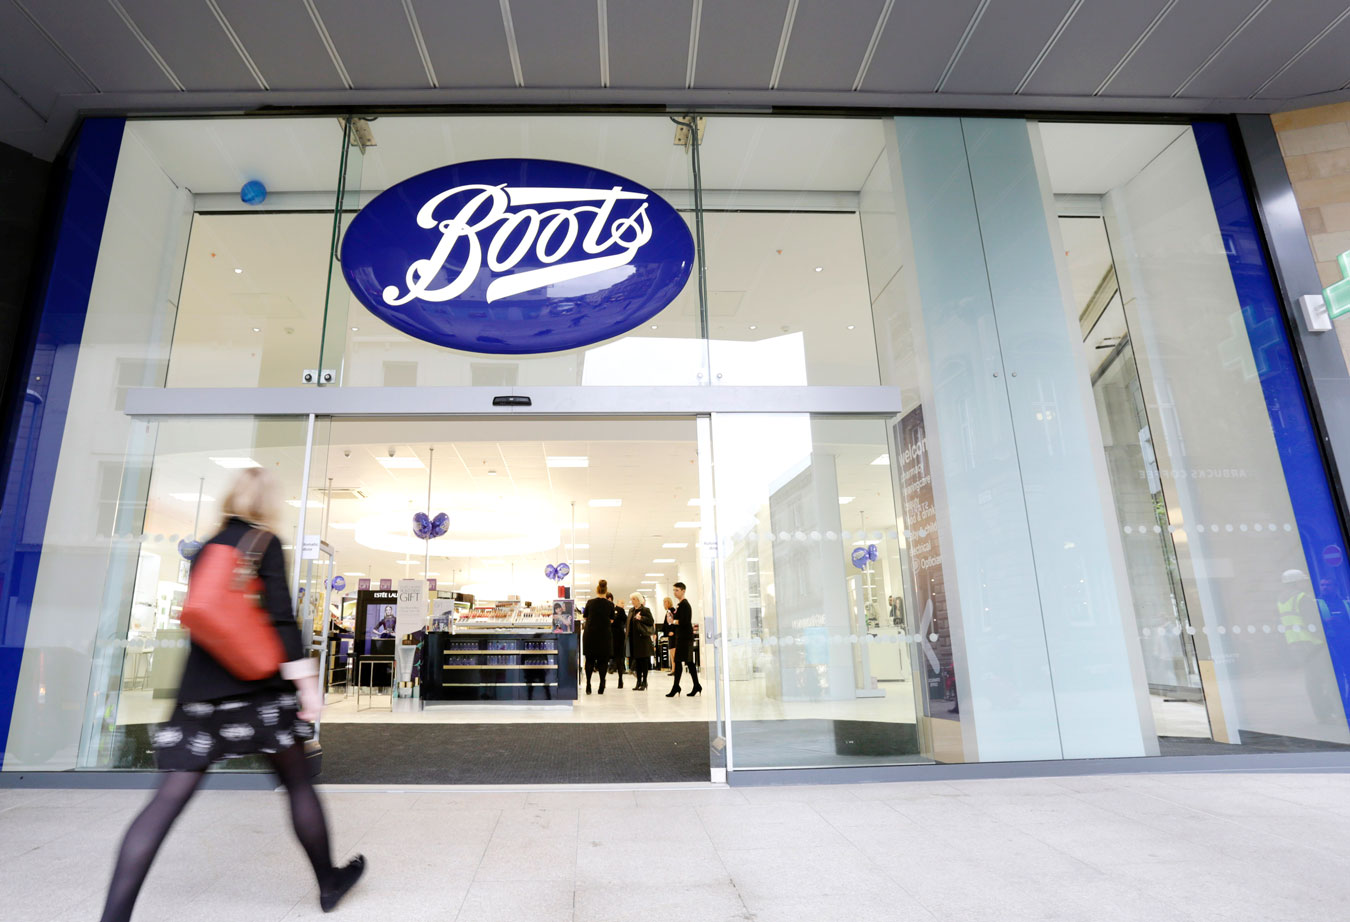 Boots store entrance